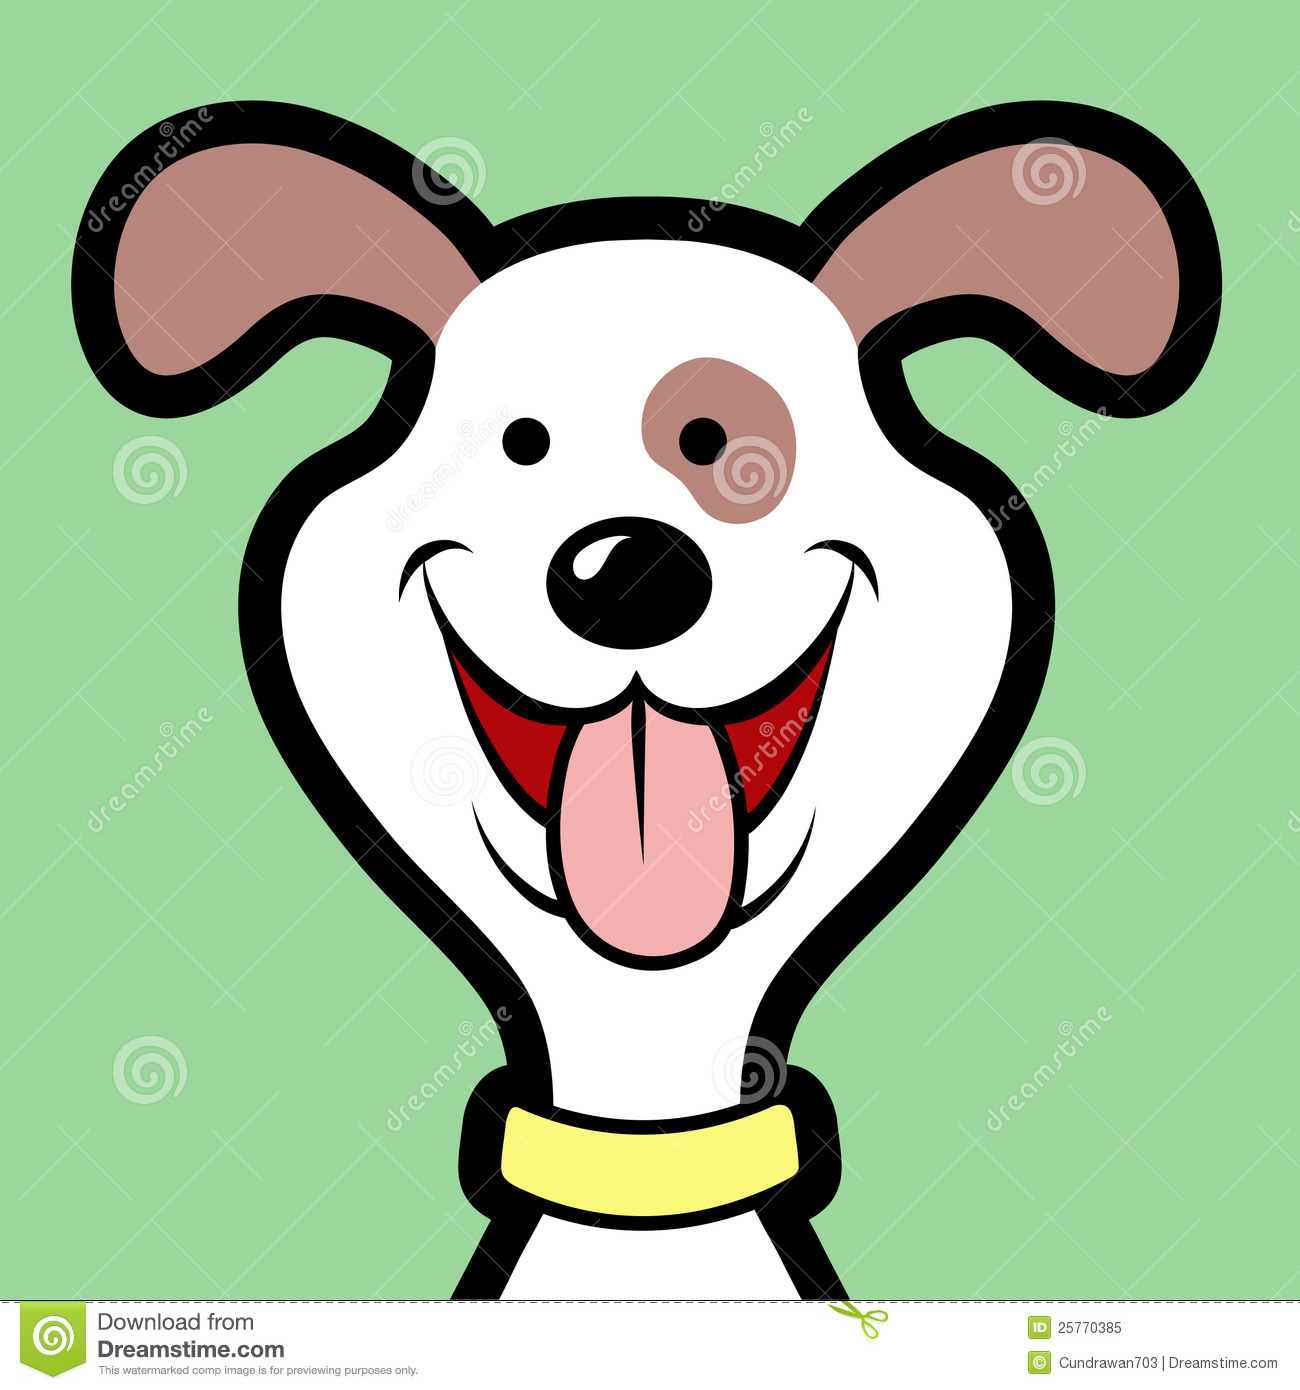 Avatar 2 Animals: Dog Avatar Royalty Free Stock Photo